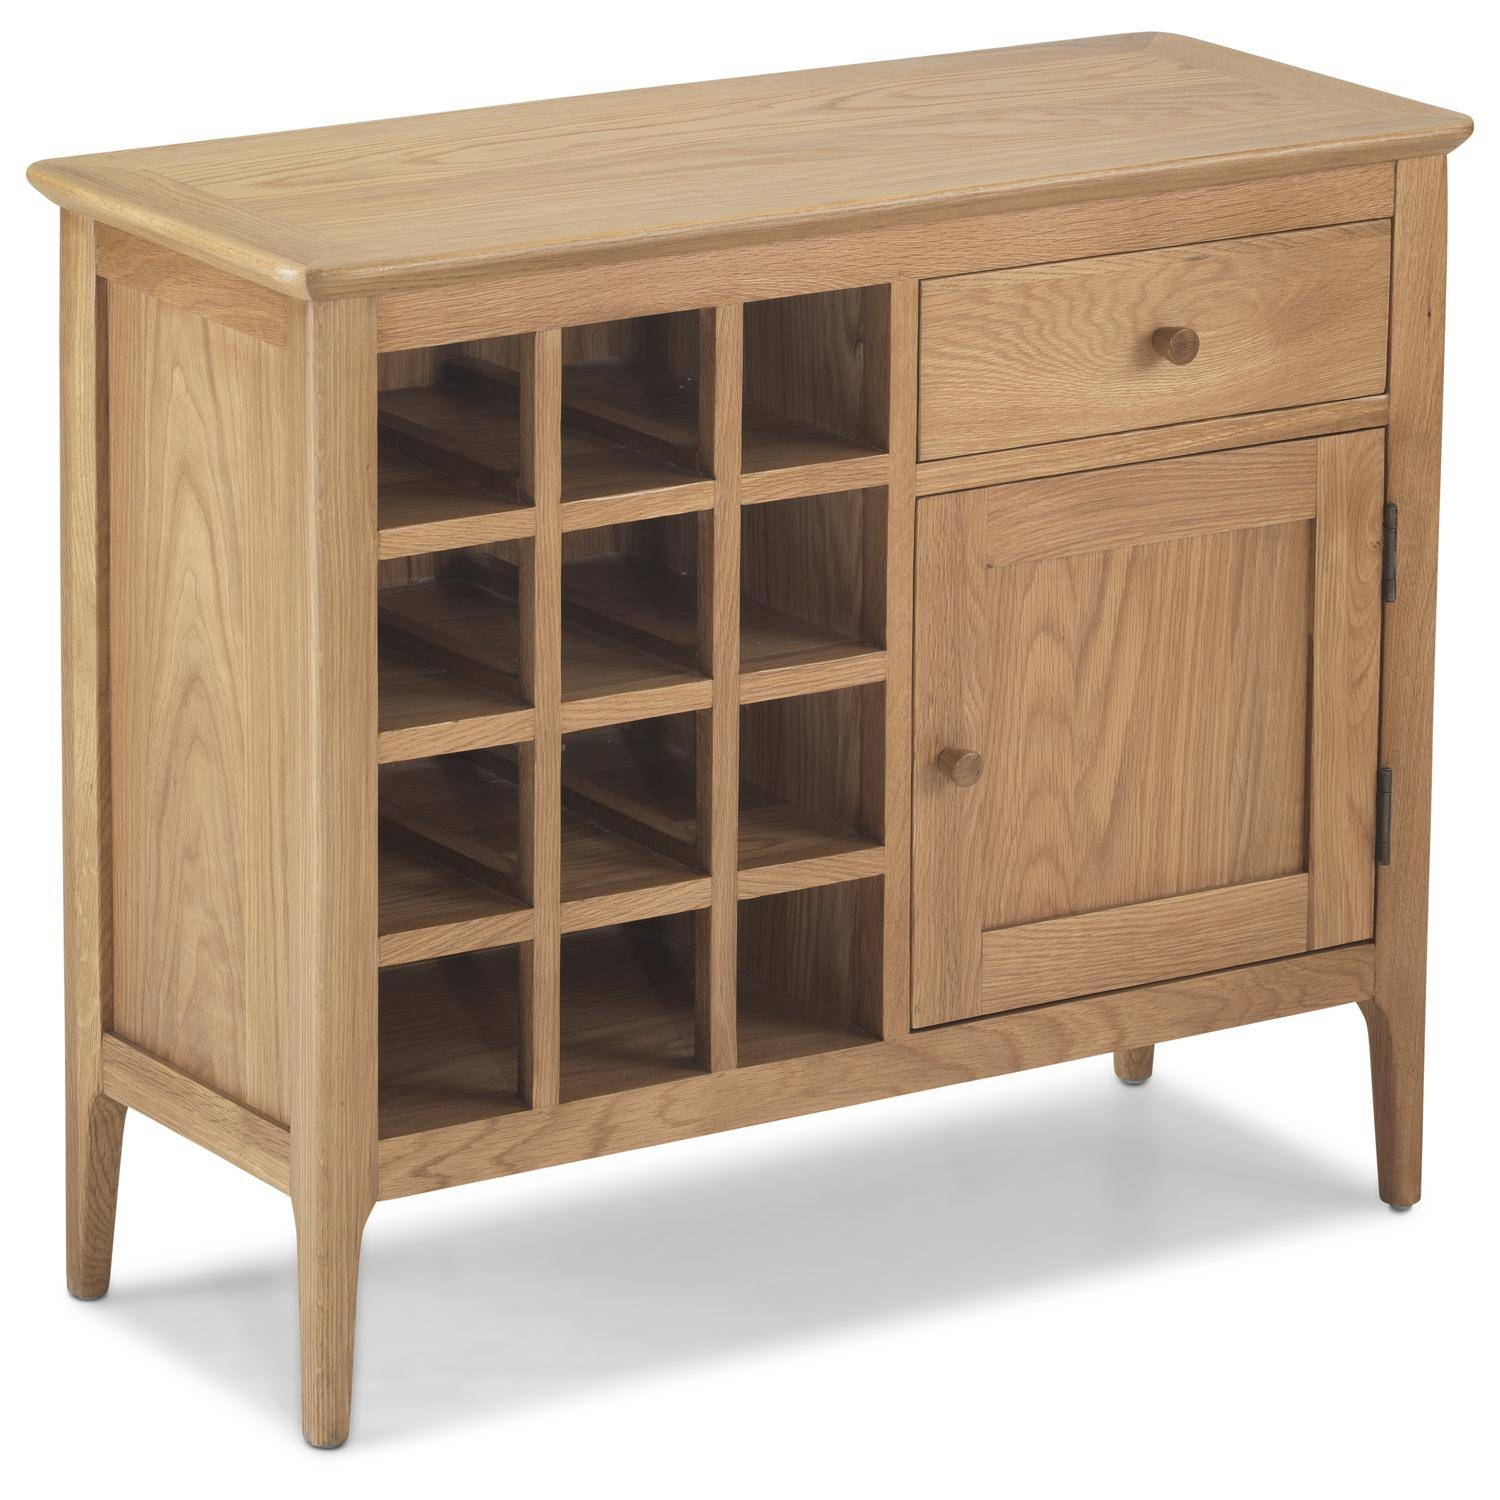 Oak Wine Rack Sideboard - Oak Sideboards For The Kitchen, Dining with Oak Sideboards With Wine Rack (Image 11 of 30)